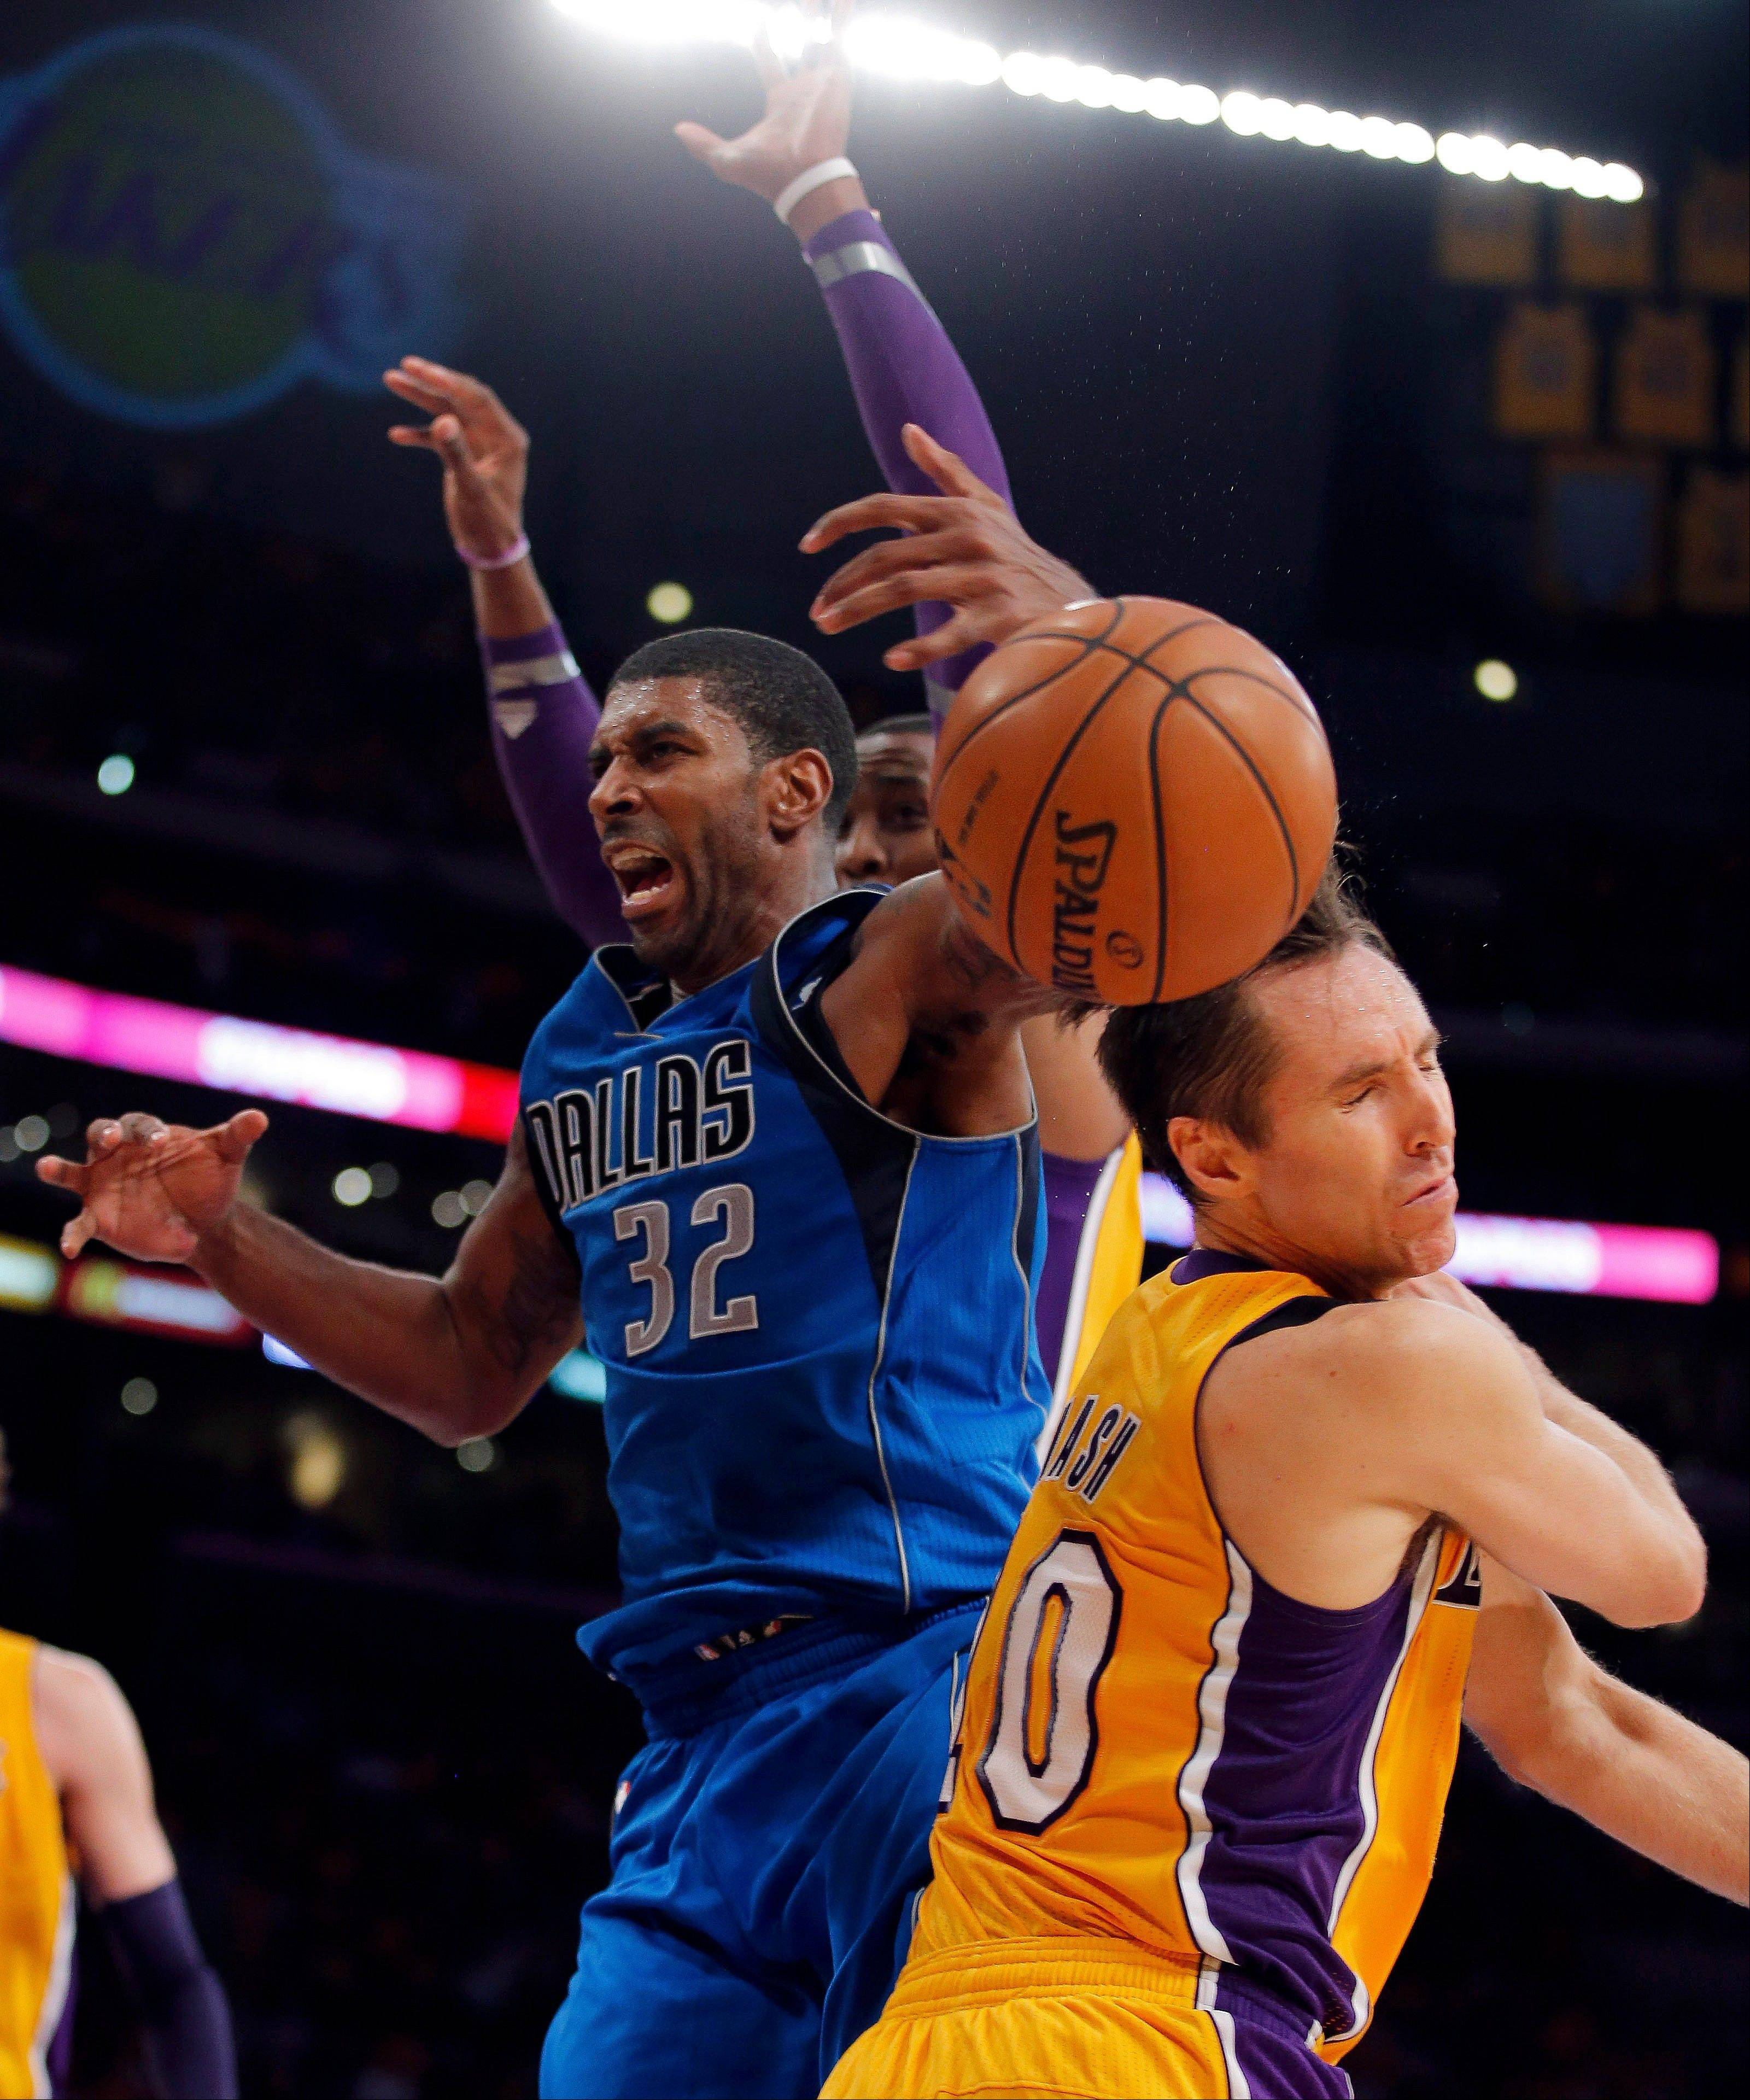 The Dallas Mavericks� O.J. Mayo, center, is fouled by Los Angeles Lakers guard Steve Nash Tuesday during the second half in Los Angeles. The Mavericks won 99-91.